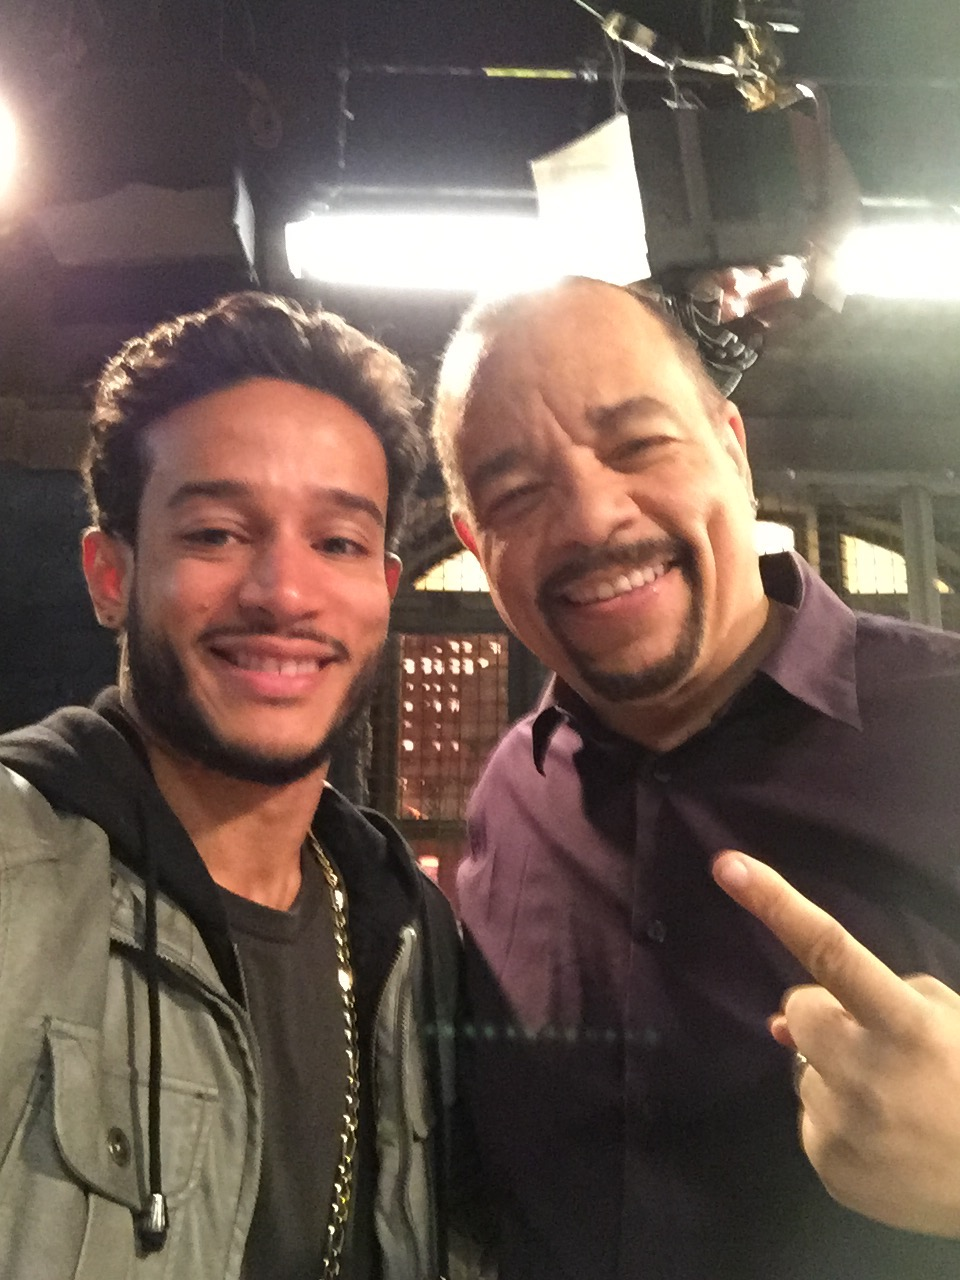 W/ Ice T on set for Law and Order.